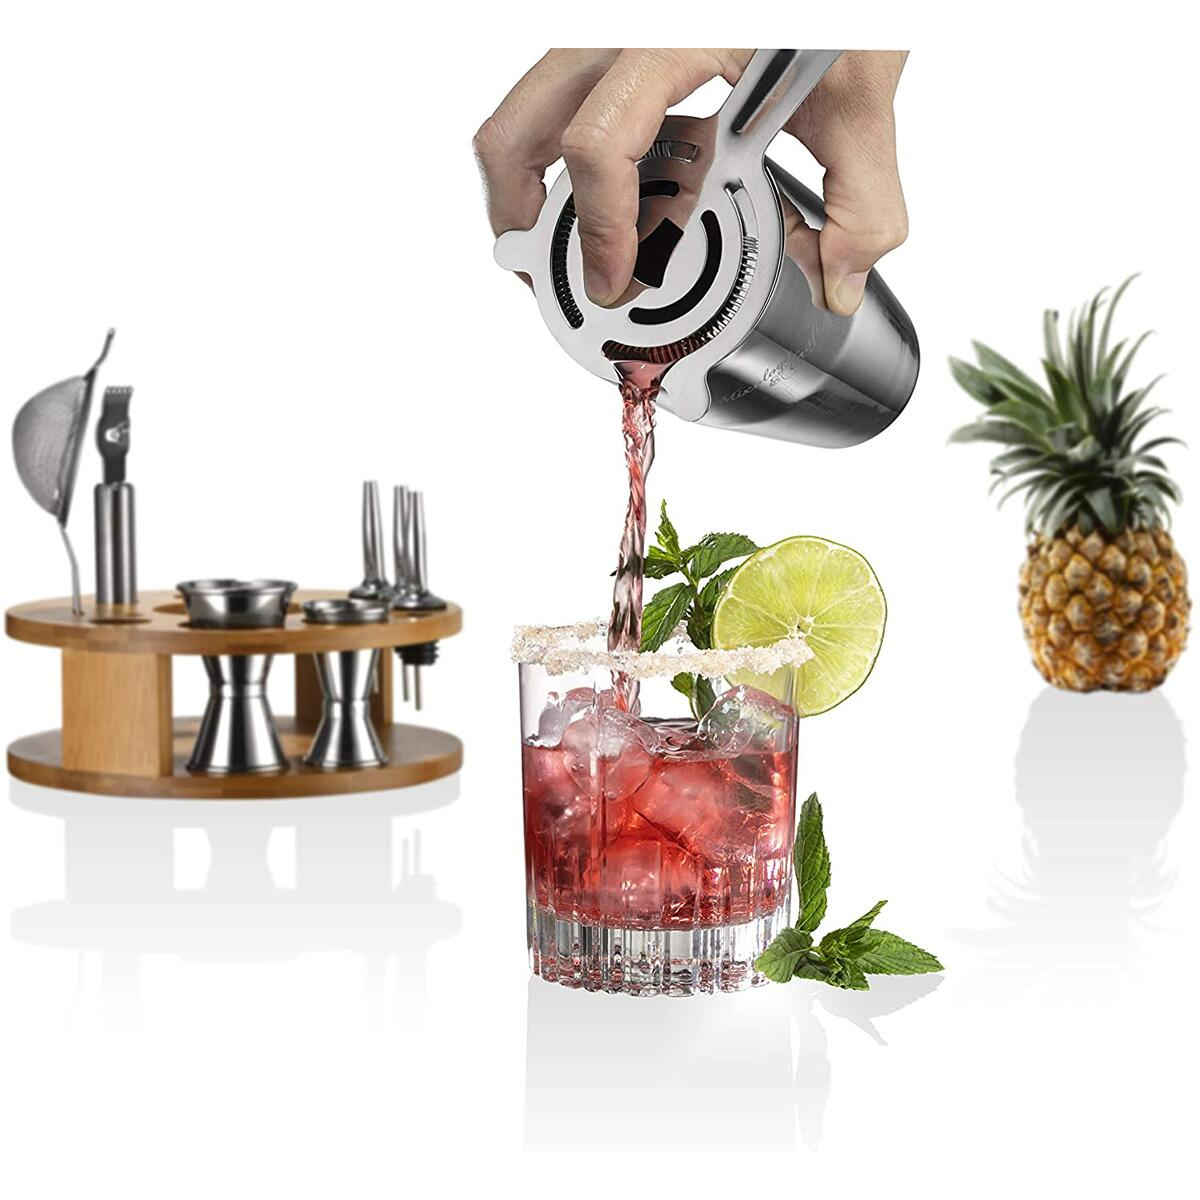 Mixology Bartender Kit: 15-Piece Bar Set Cocktail Shaker Set with Stylish Bamboo Stand | Perfect for Home Bar Tools Bartender Tool Kit and Martini Cocktail Shaker for Awesome Drink Mixing Experience